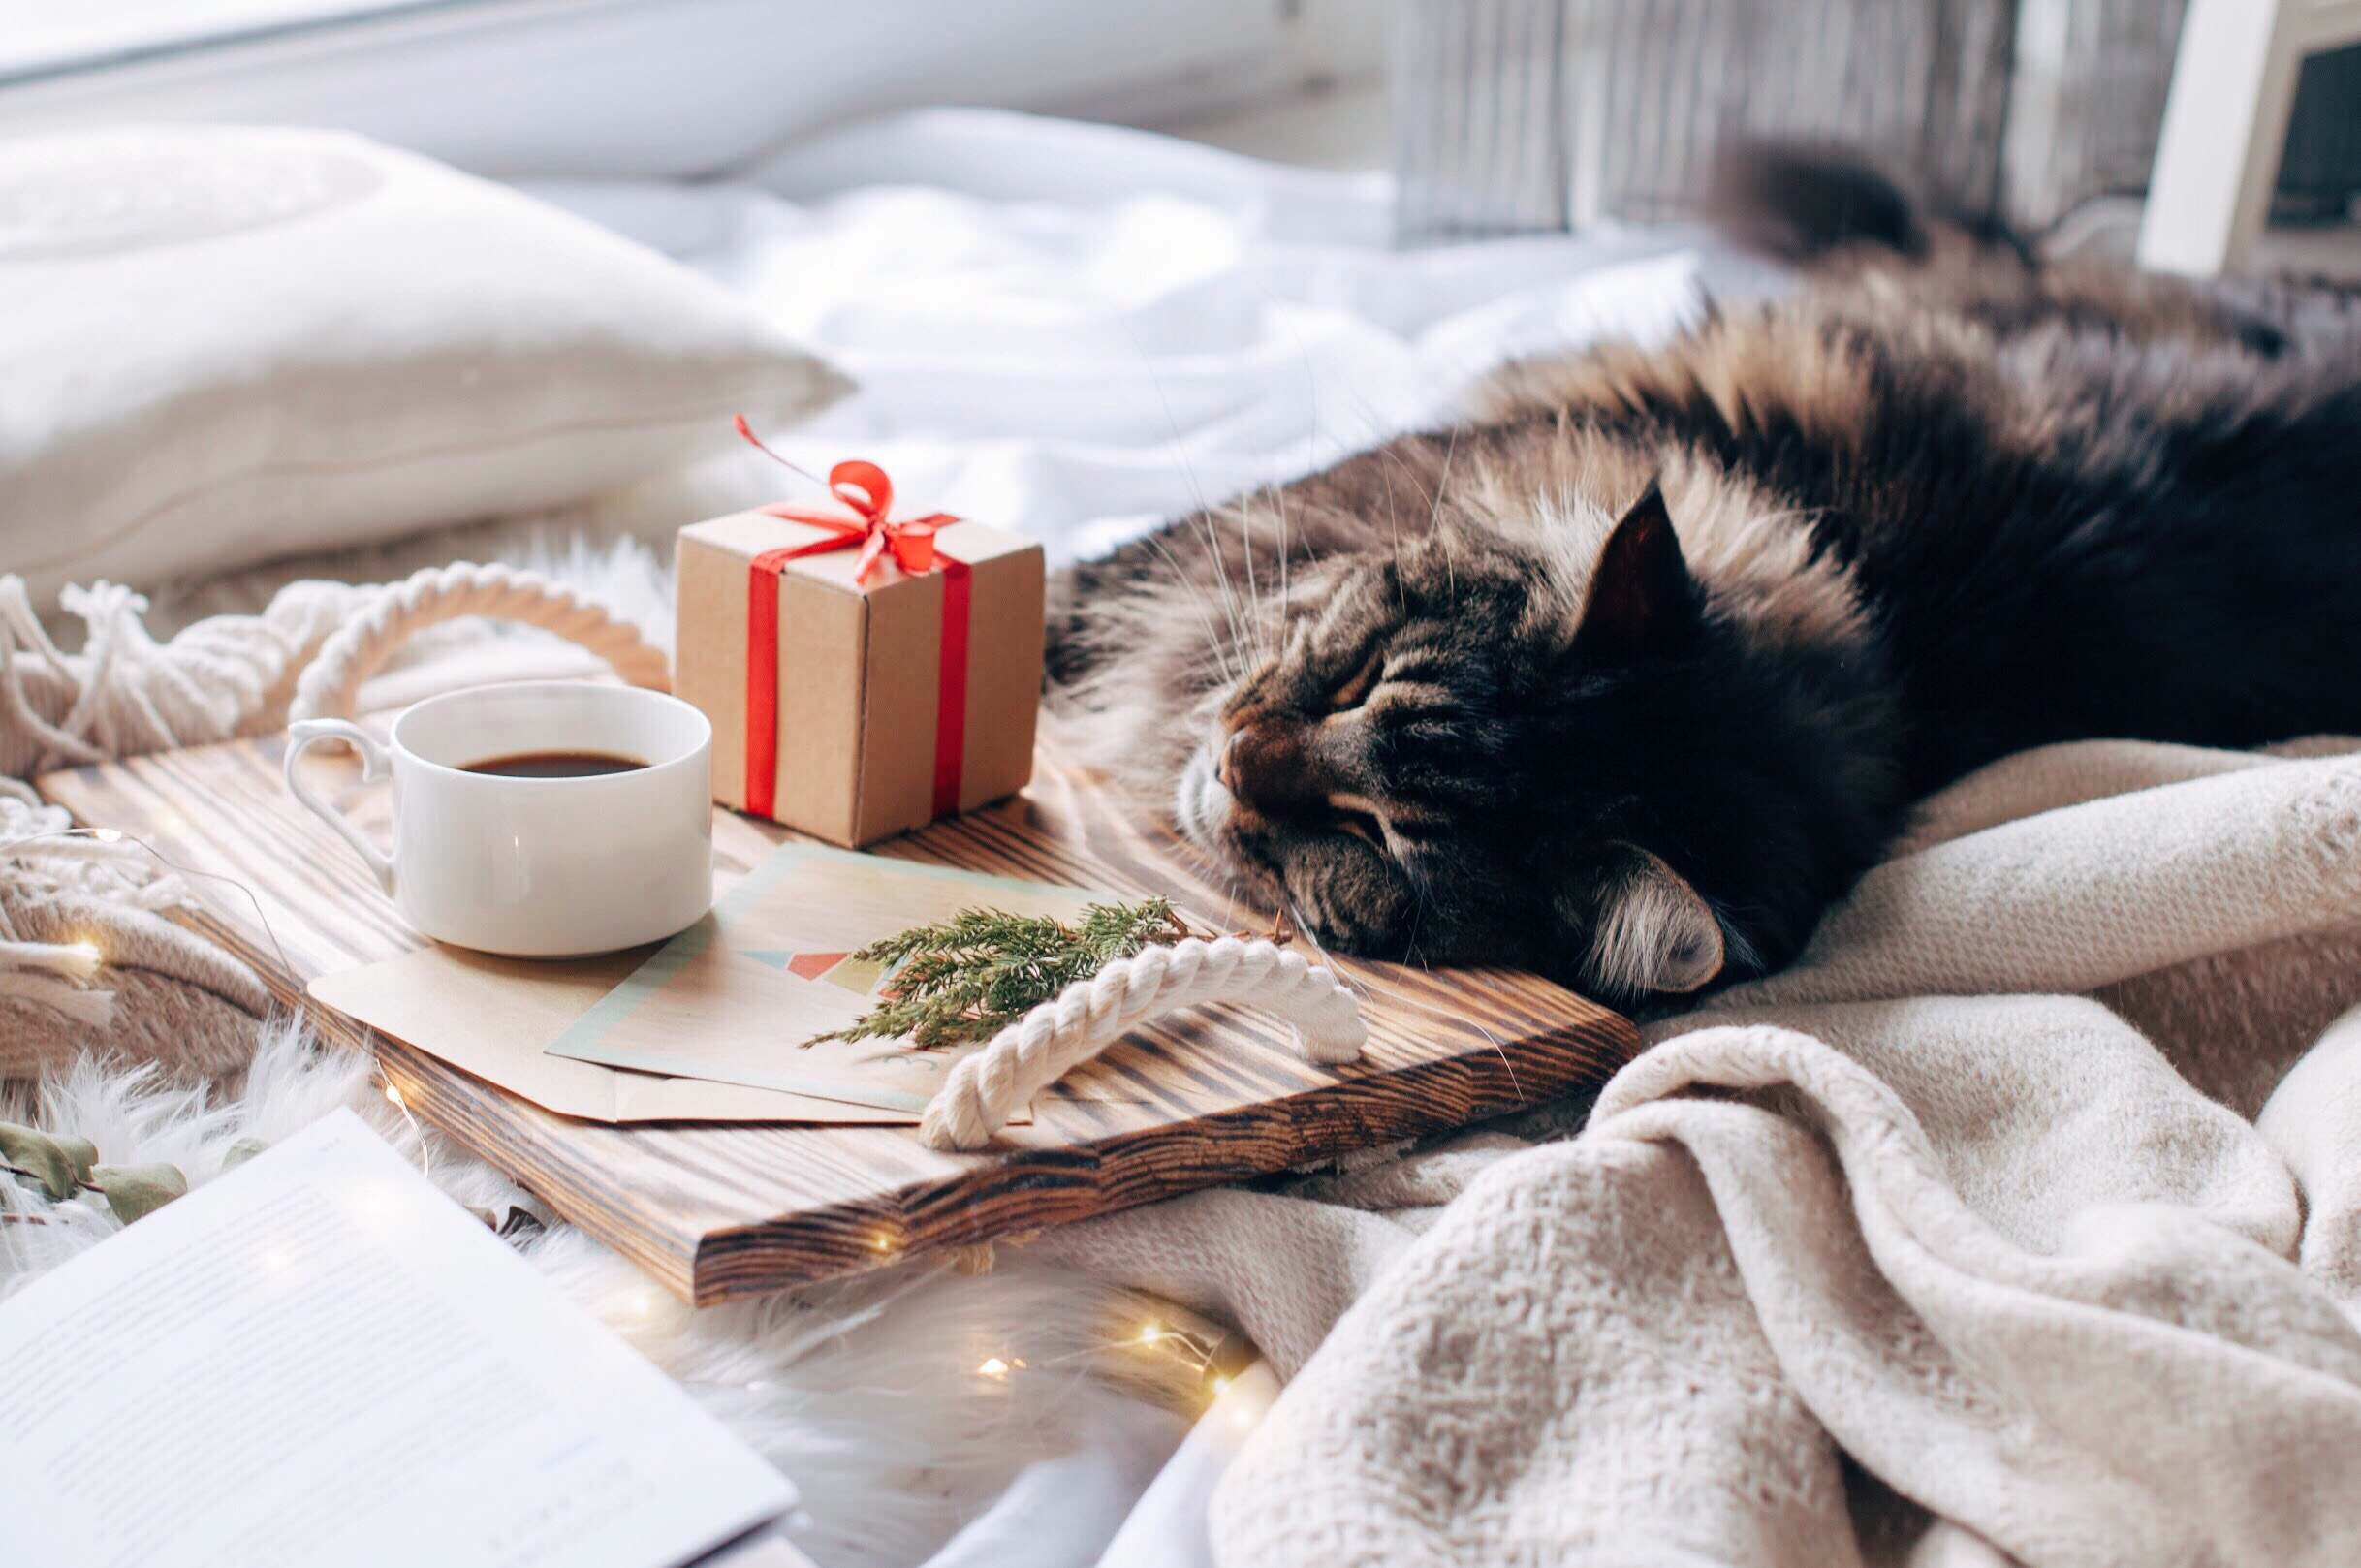 Cat all cozy and fell asleep near a warm cup of coffee.